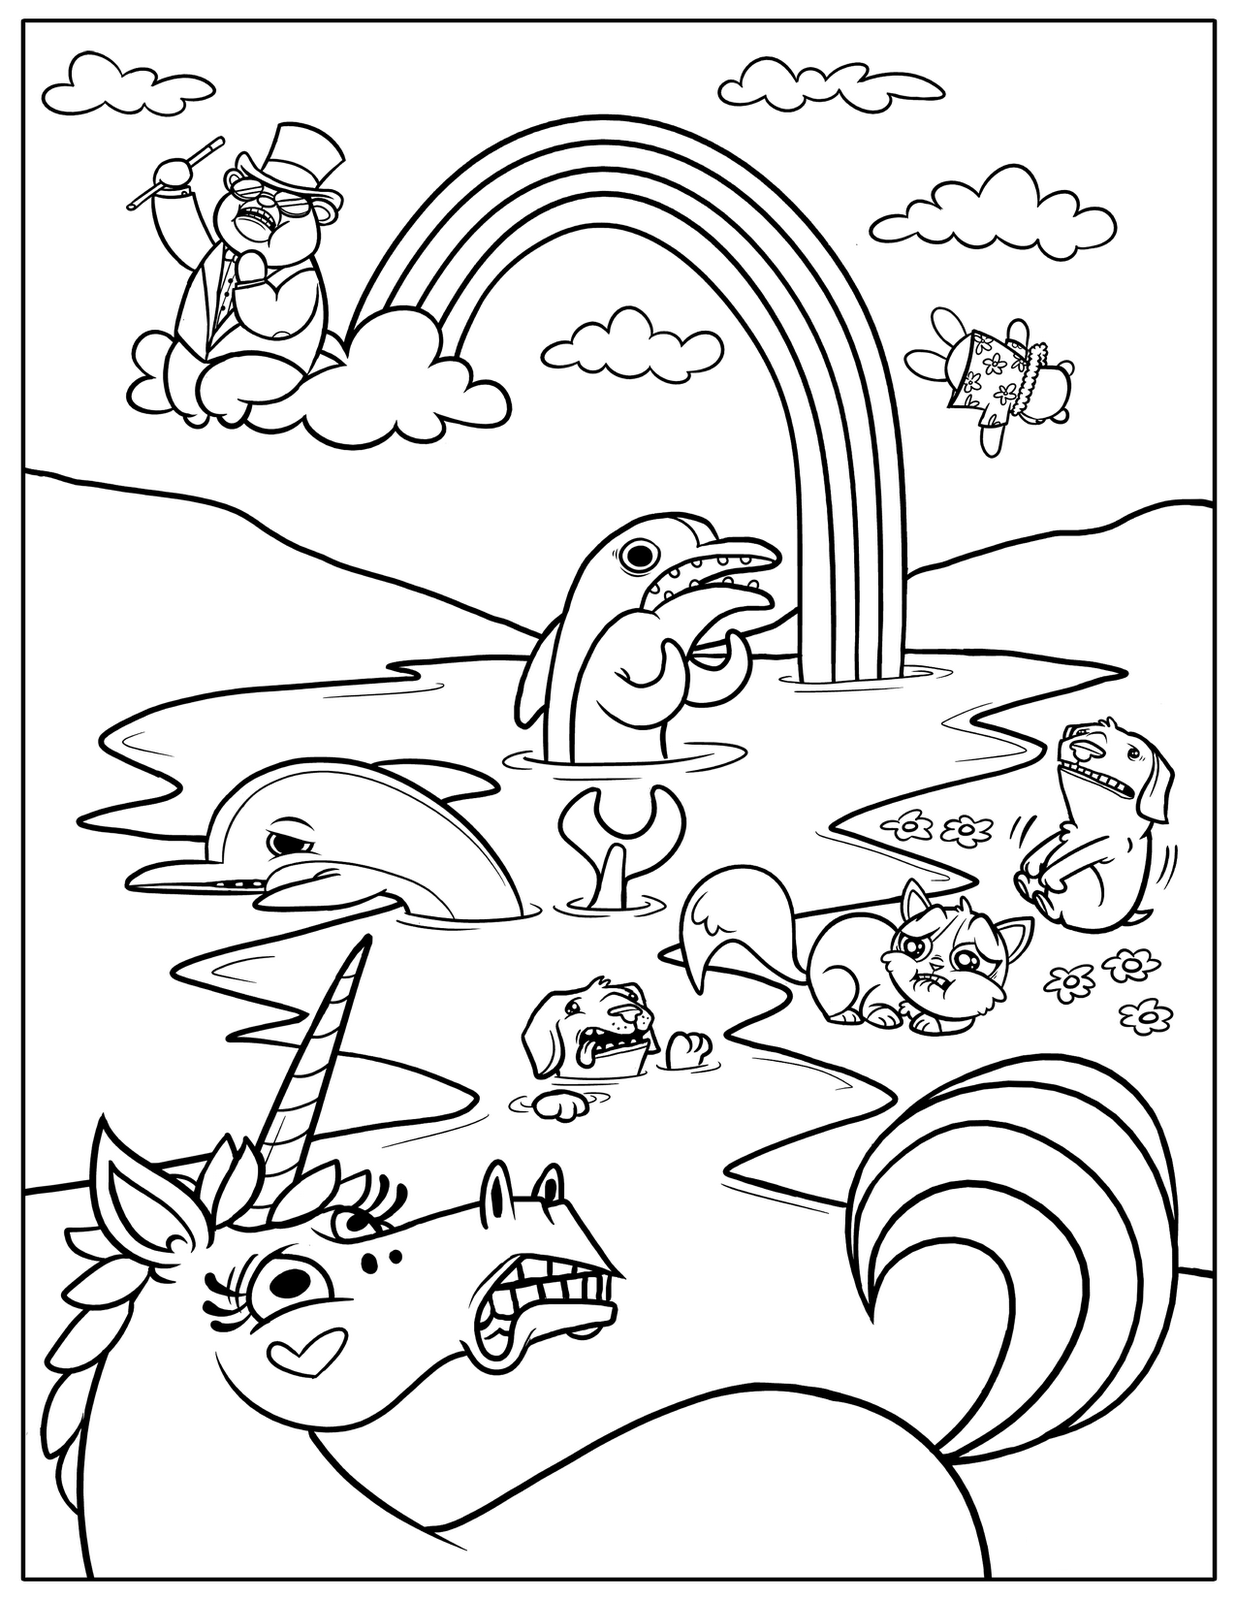 Printable coloring pages for 12 year olds - Rainbow Coloring Pages Kids Printable